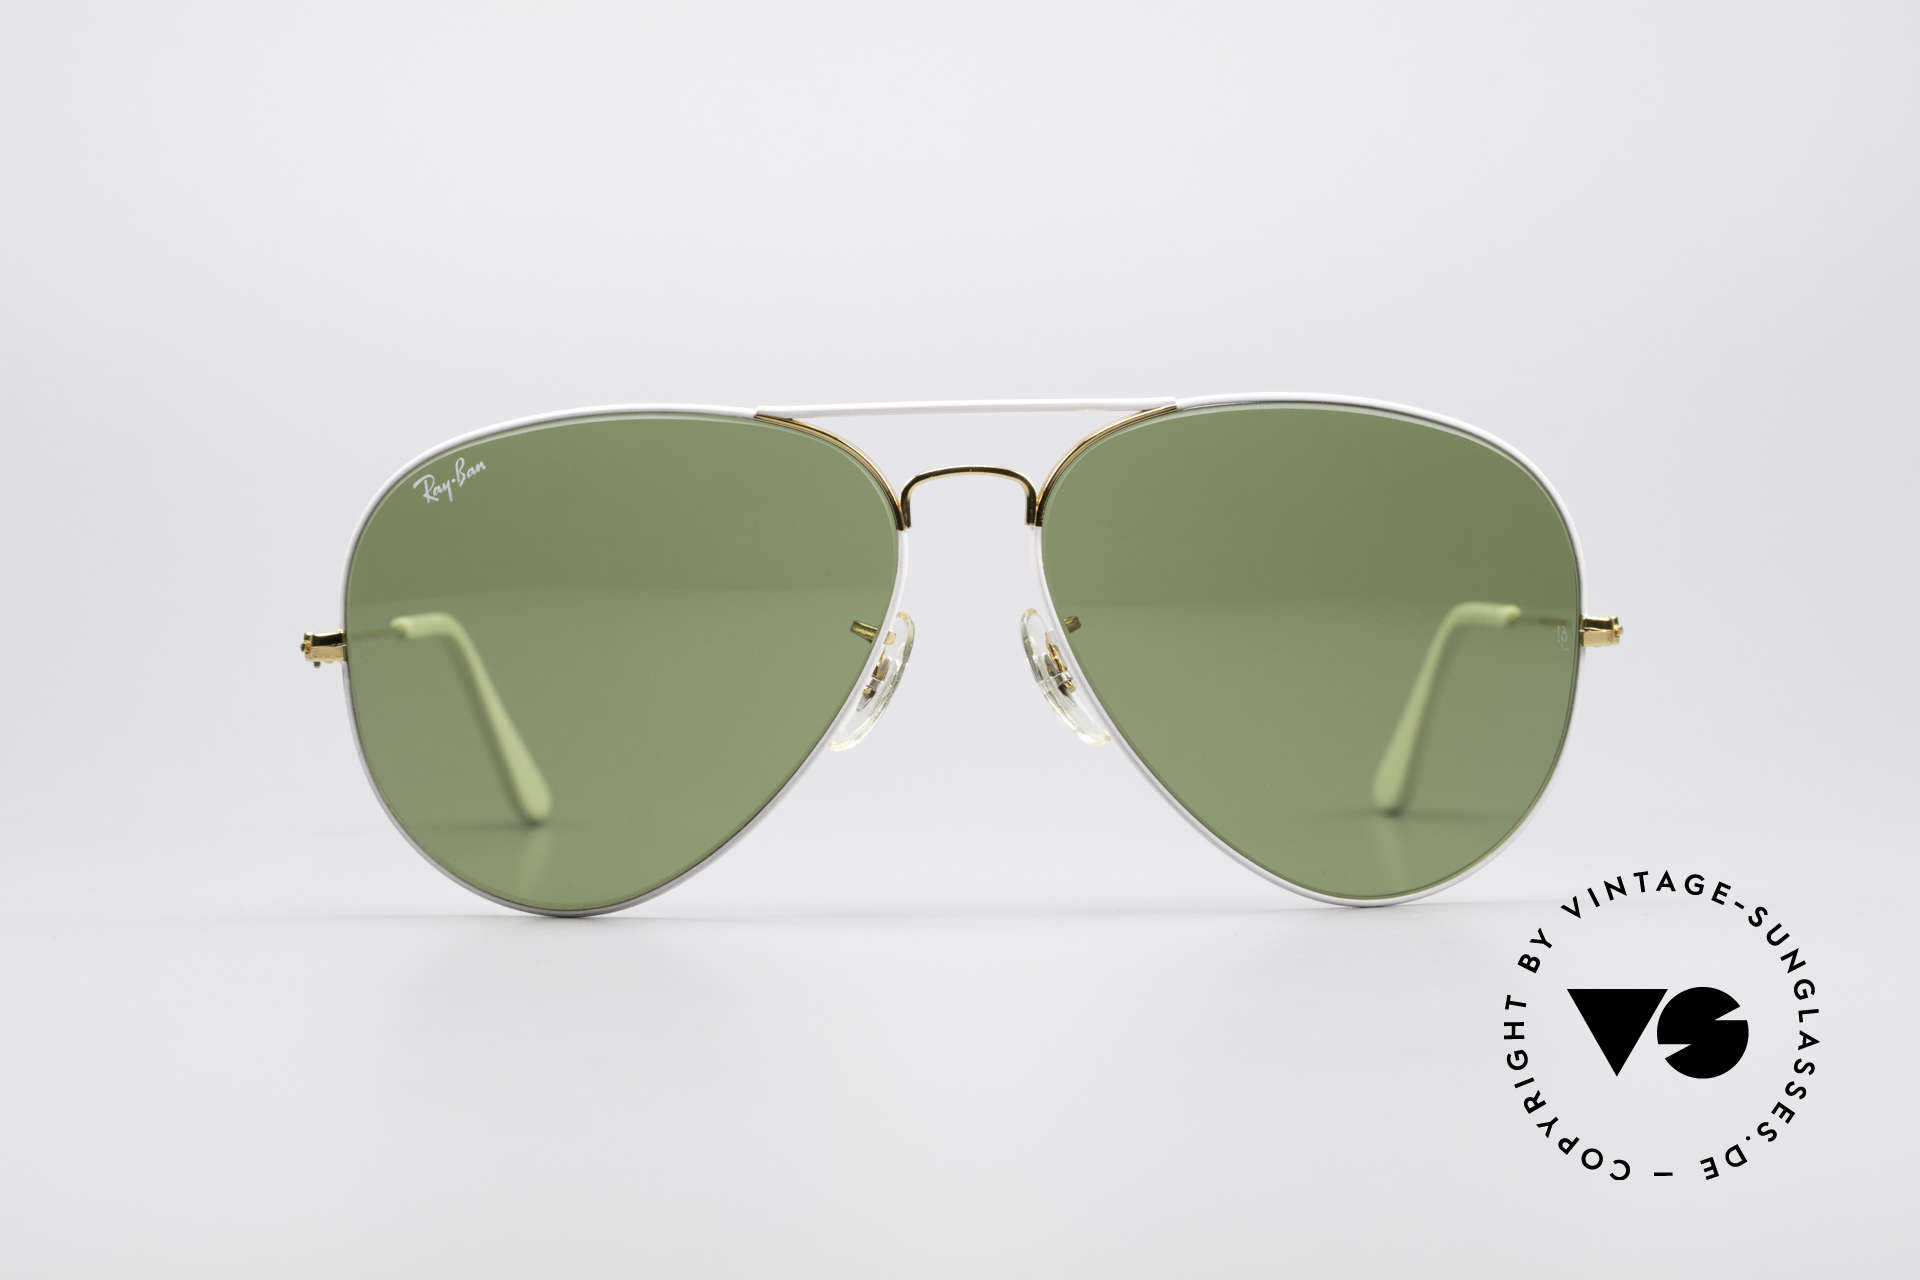 Ray Ban Large Metal II Flying Colors Limited Edition, model of the 'Flying Colors' Collection (gold/white), Made for Men